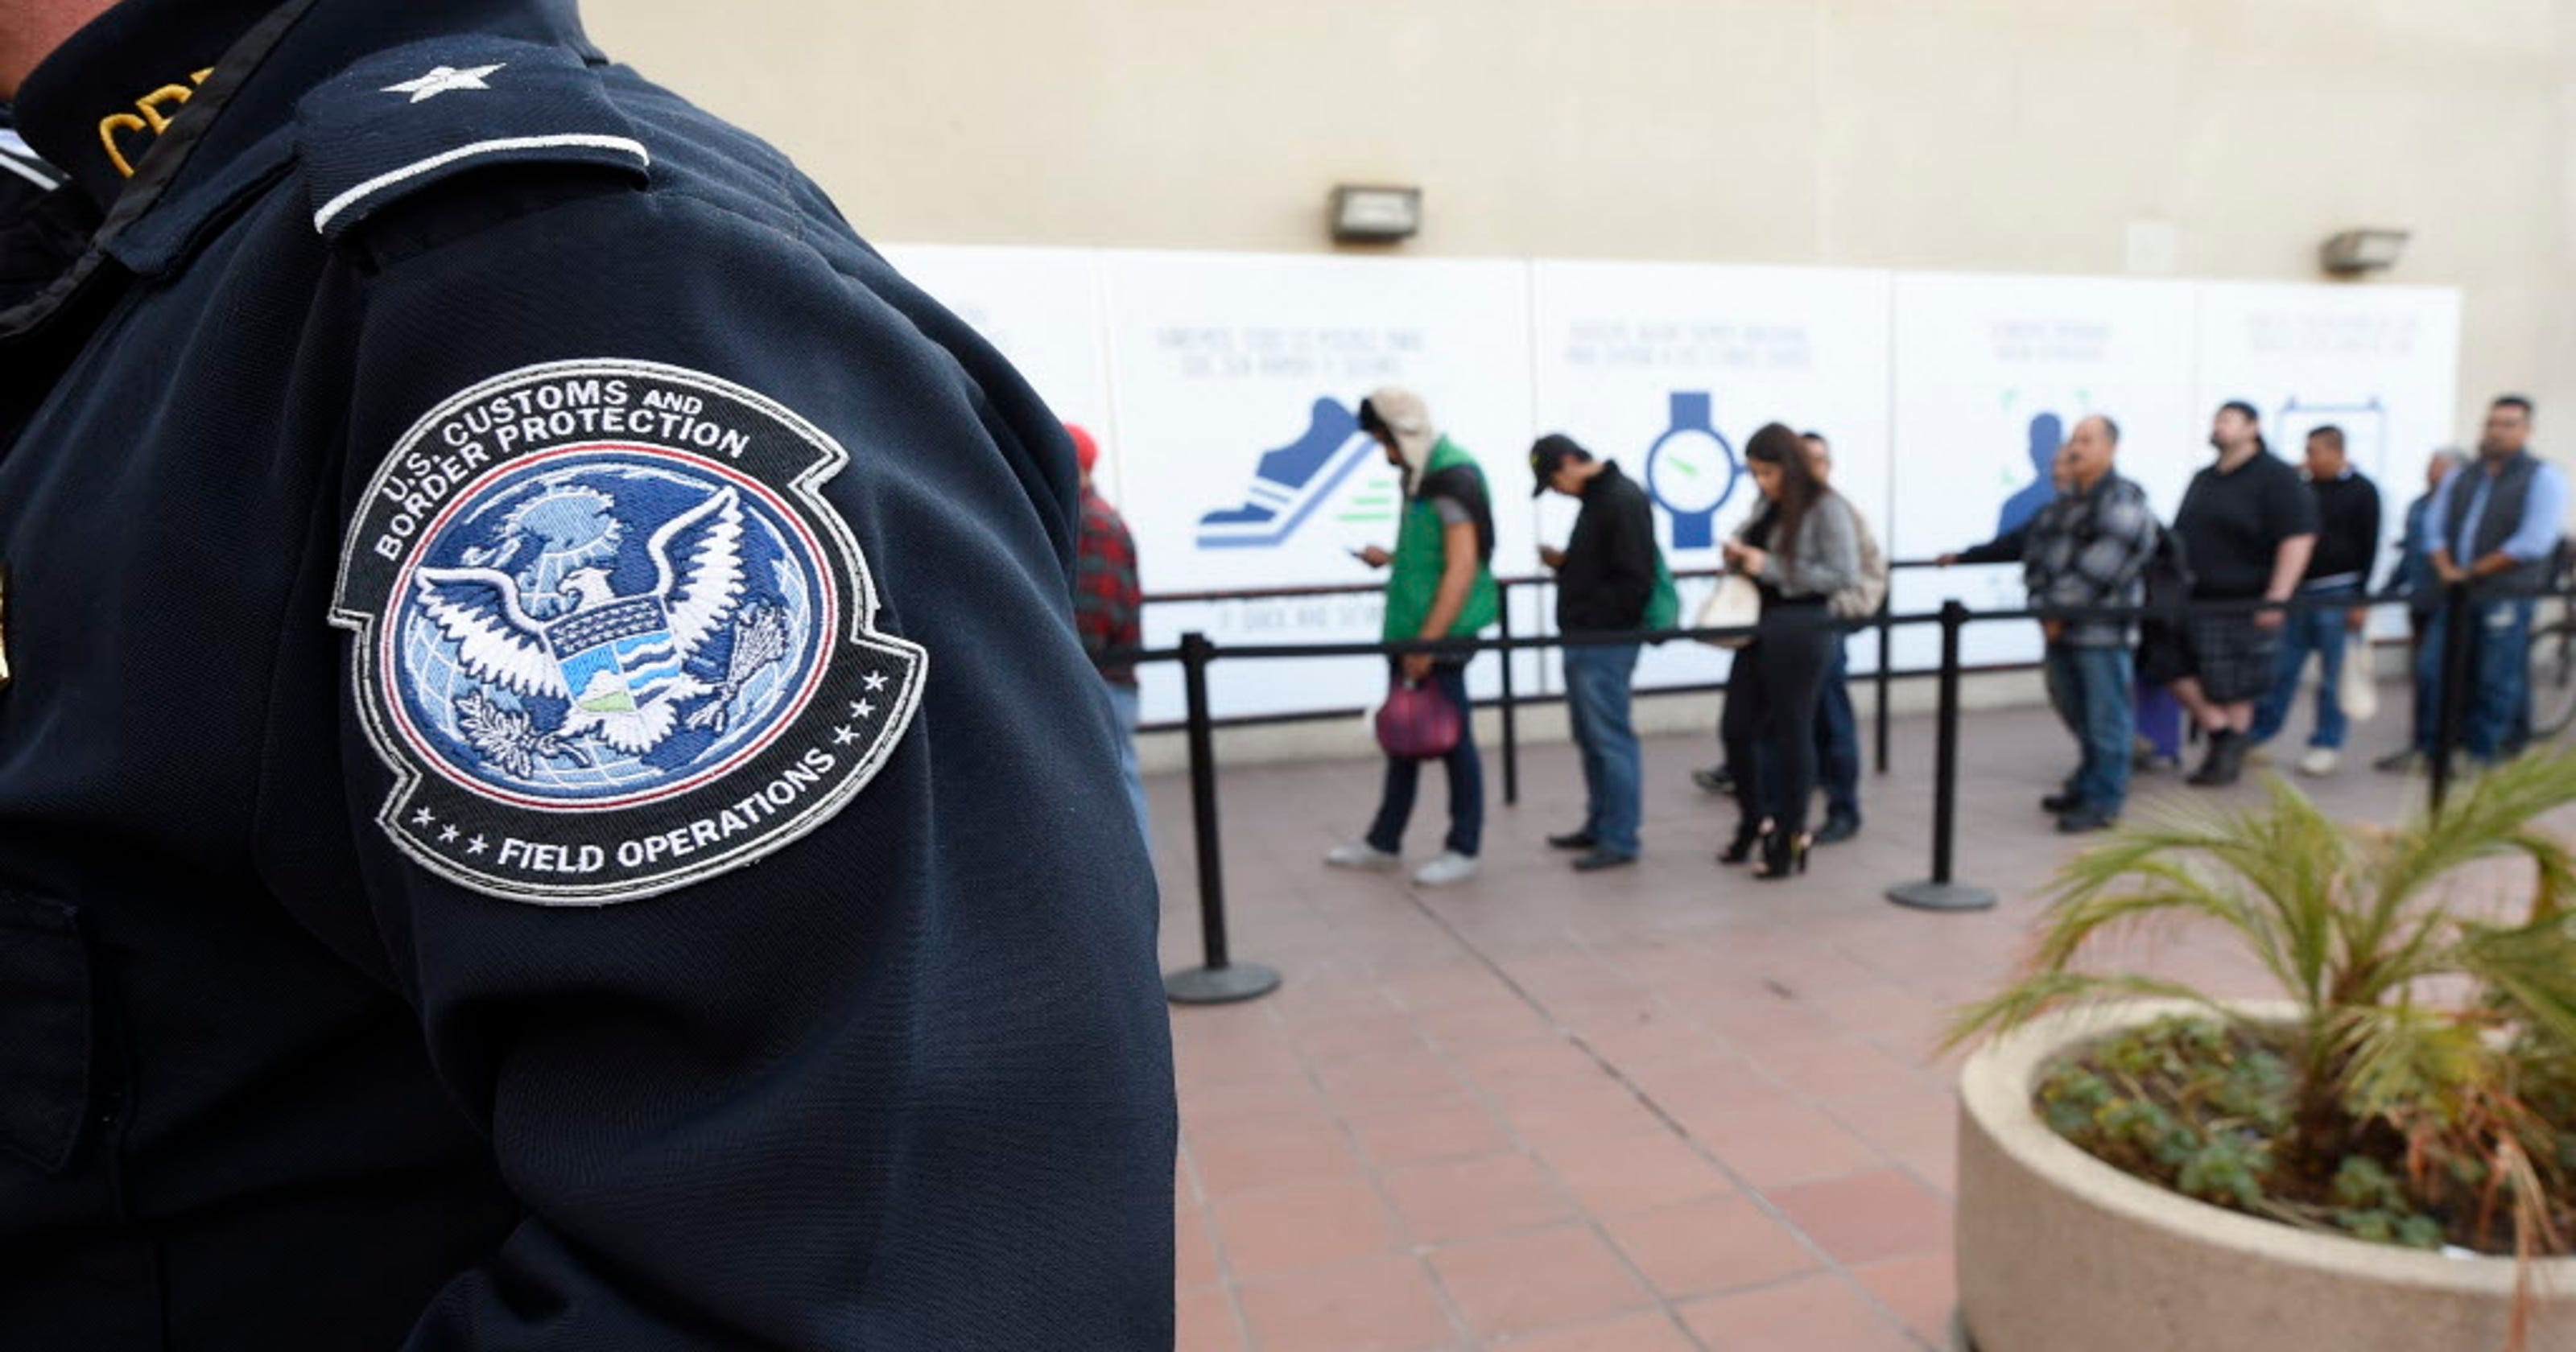 Watchdog: Customs and Border Protection wasted $5M on lie-detector tests